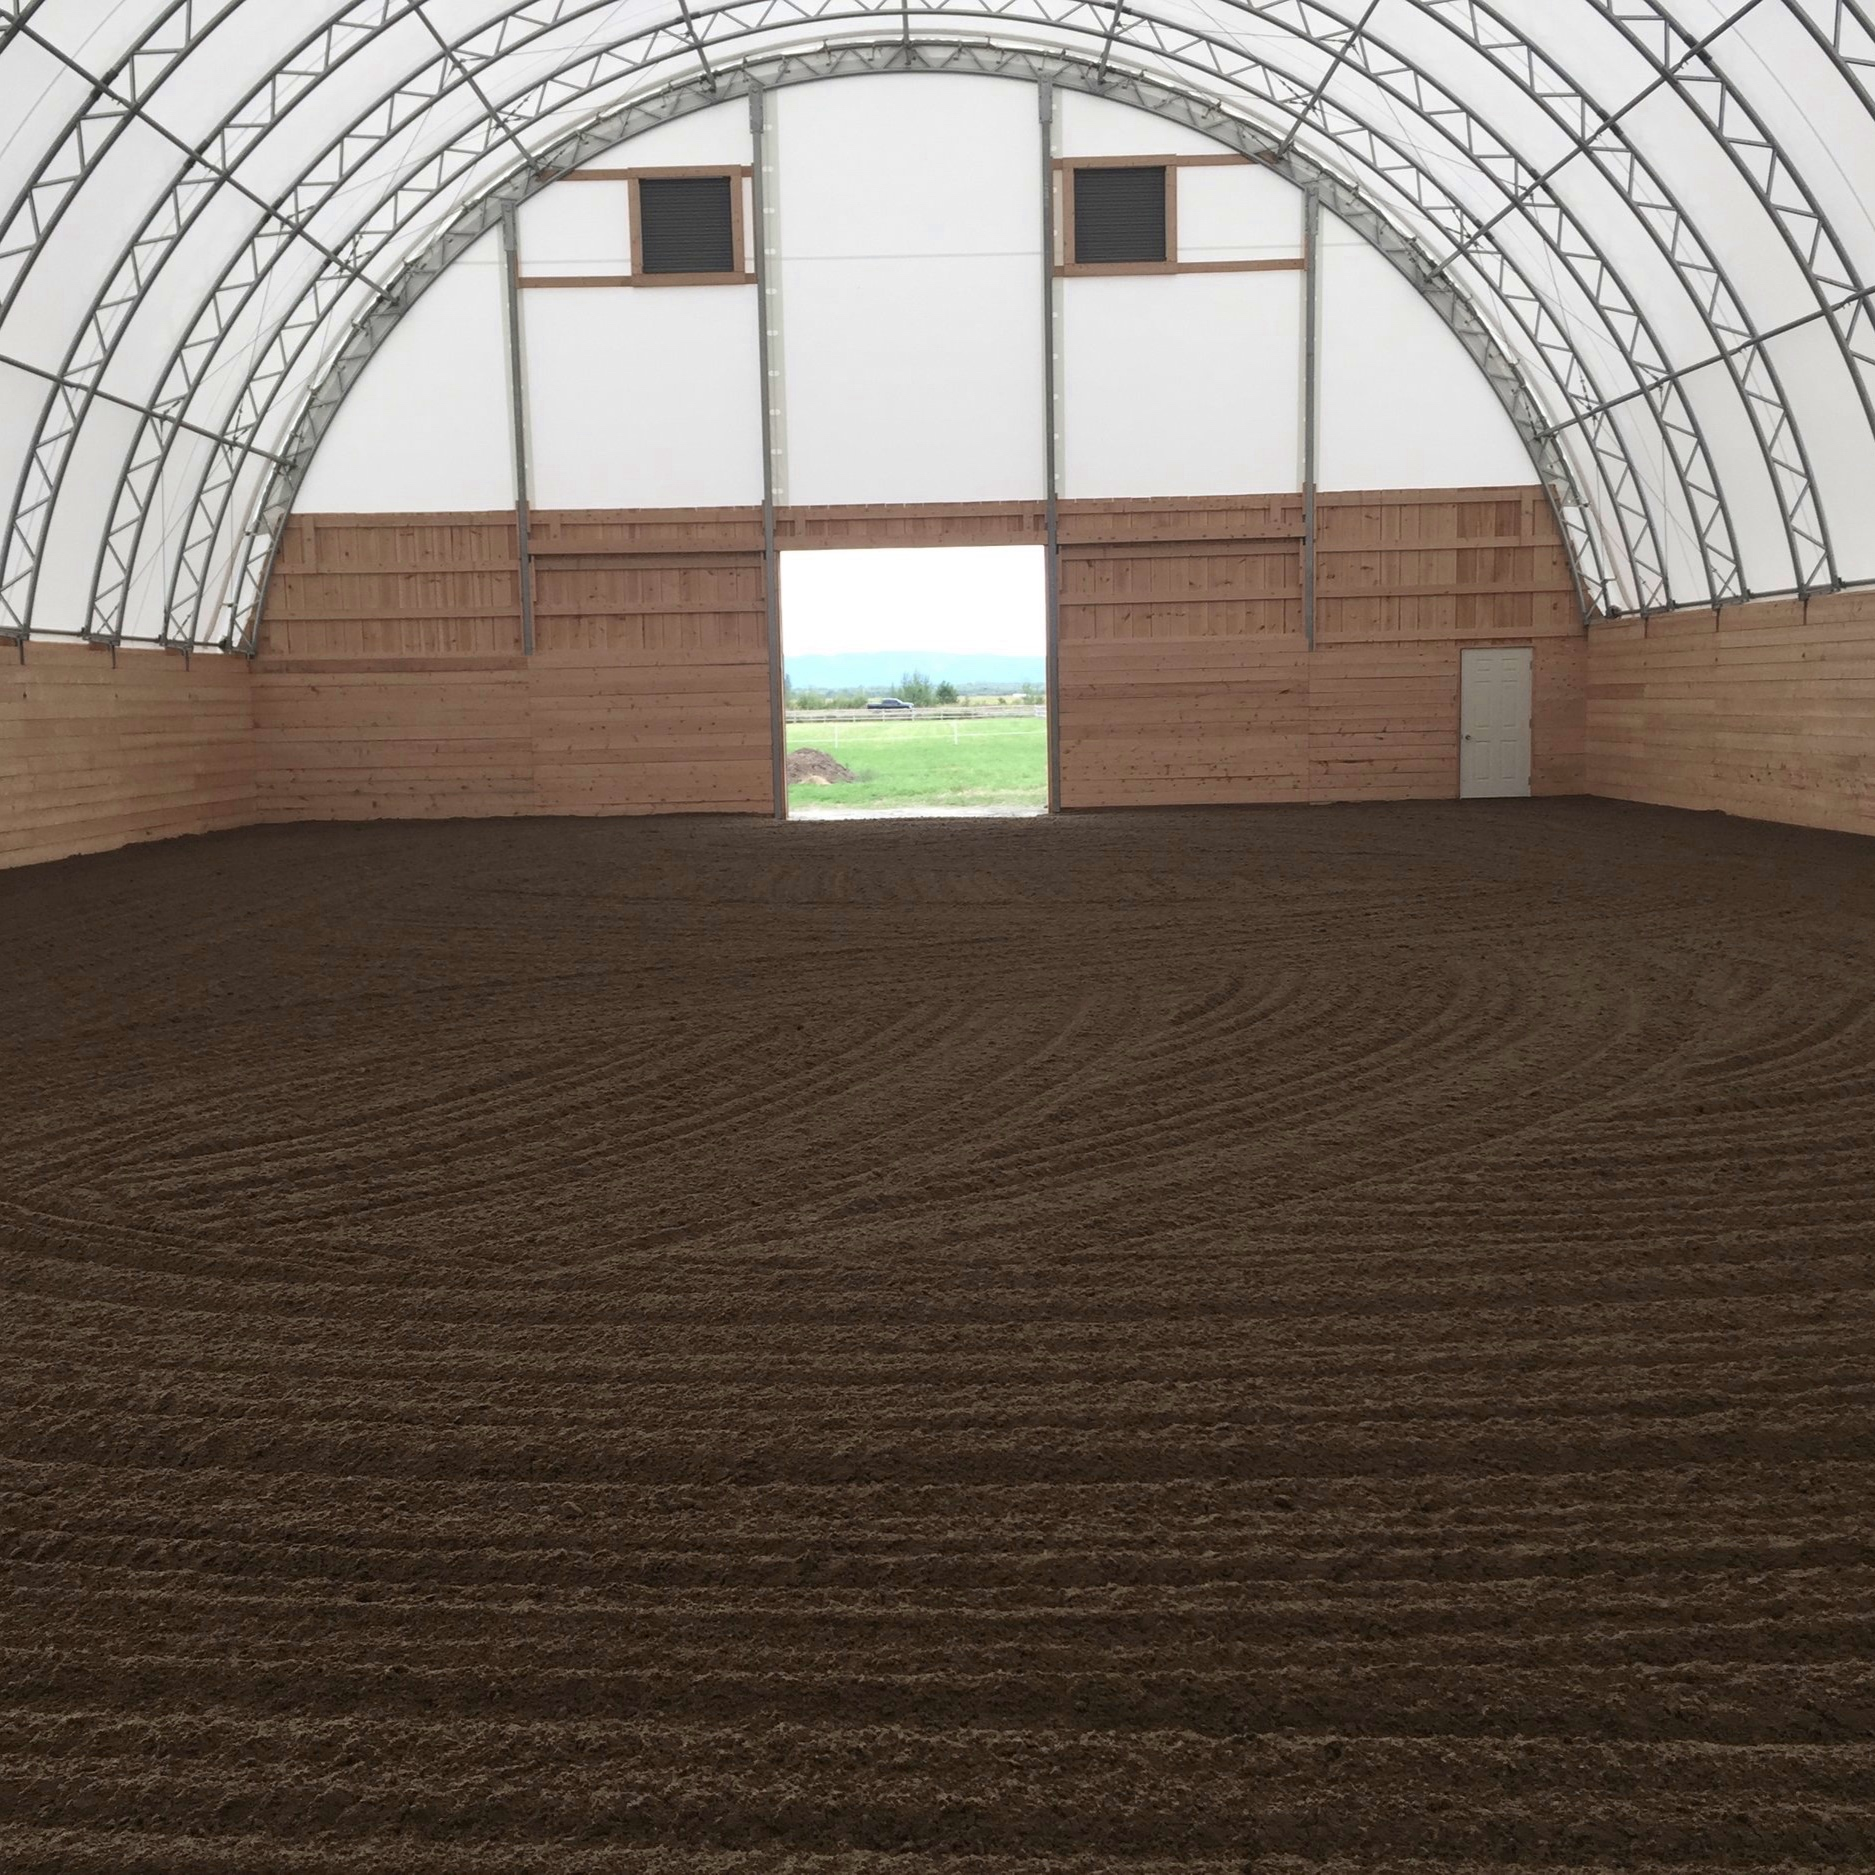 Equestrian Riding Arena Construction